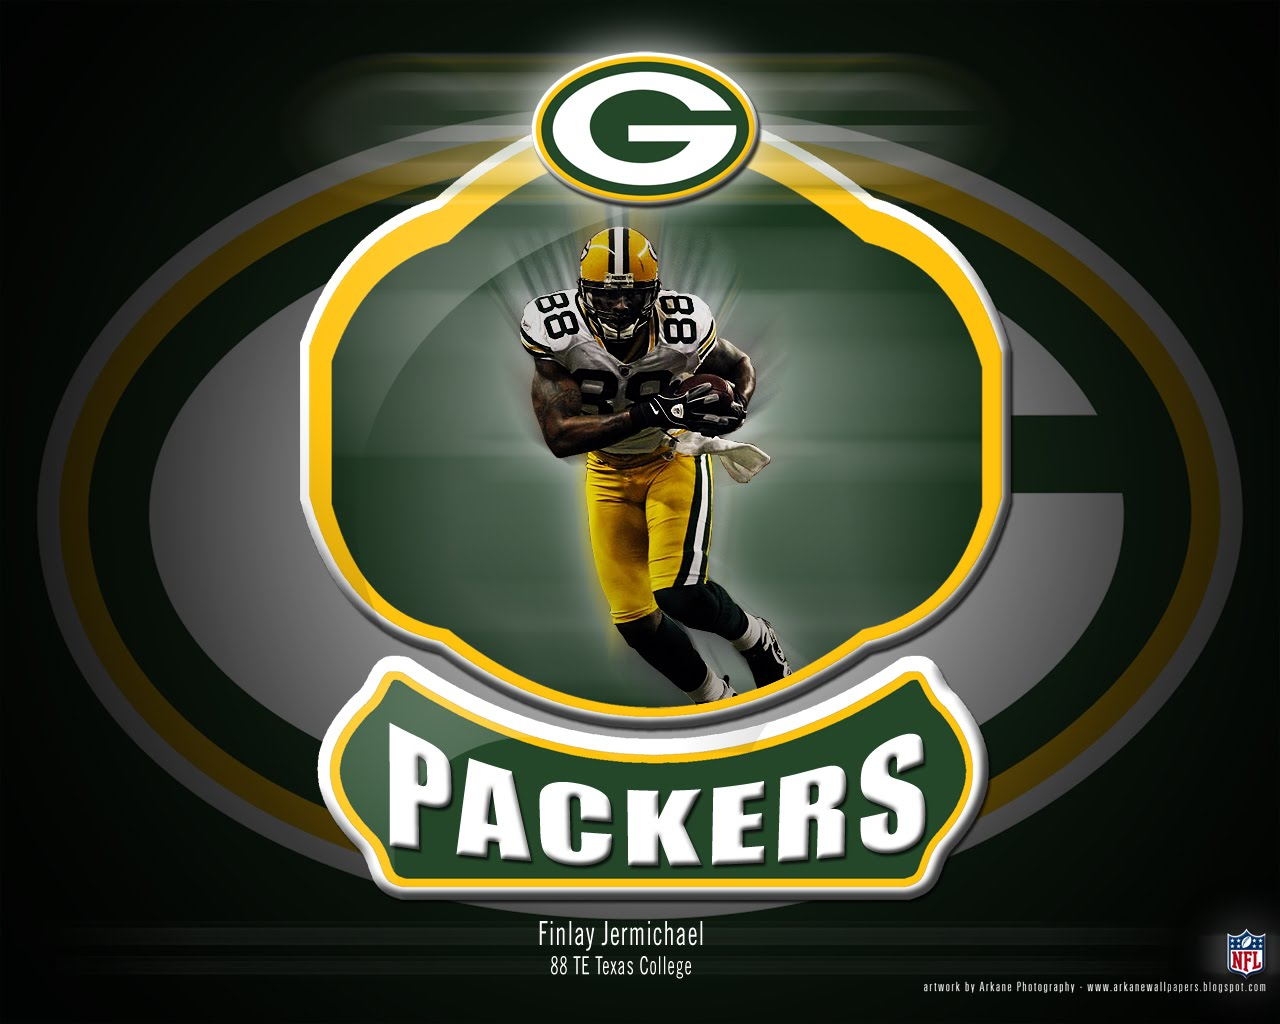 Arkane Nfl Wallpapers Finlay Jermichael Green Bay Packers